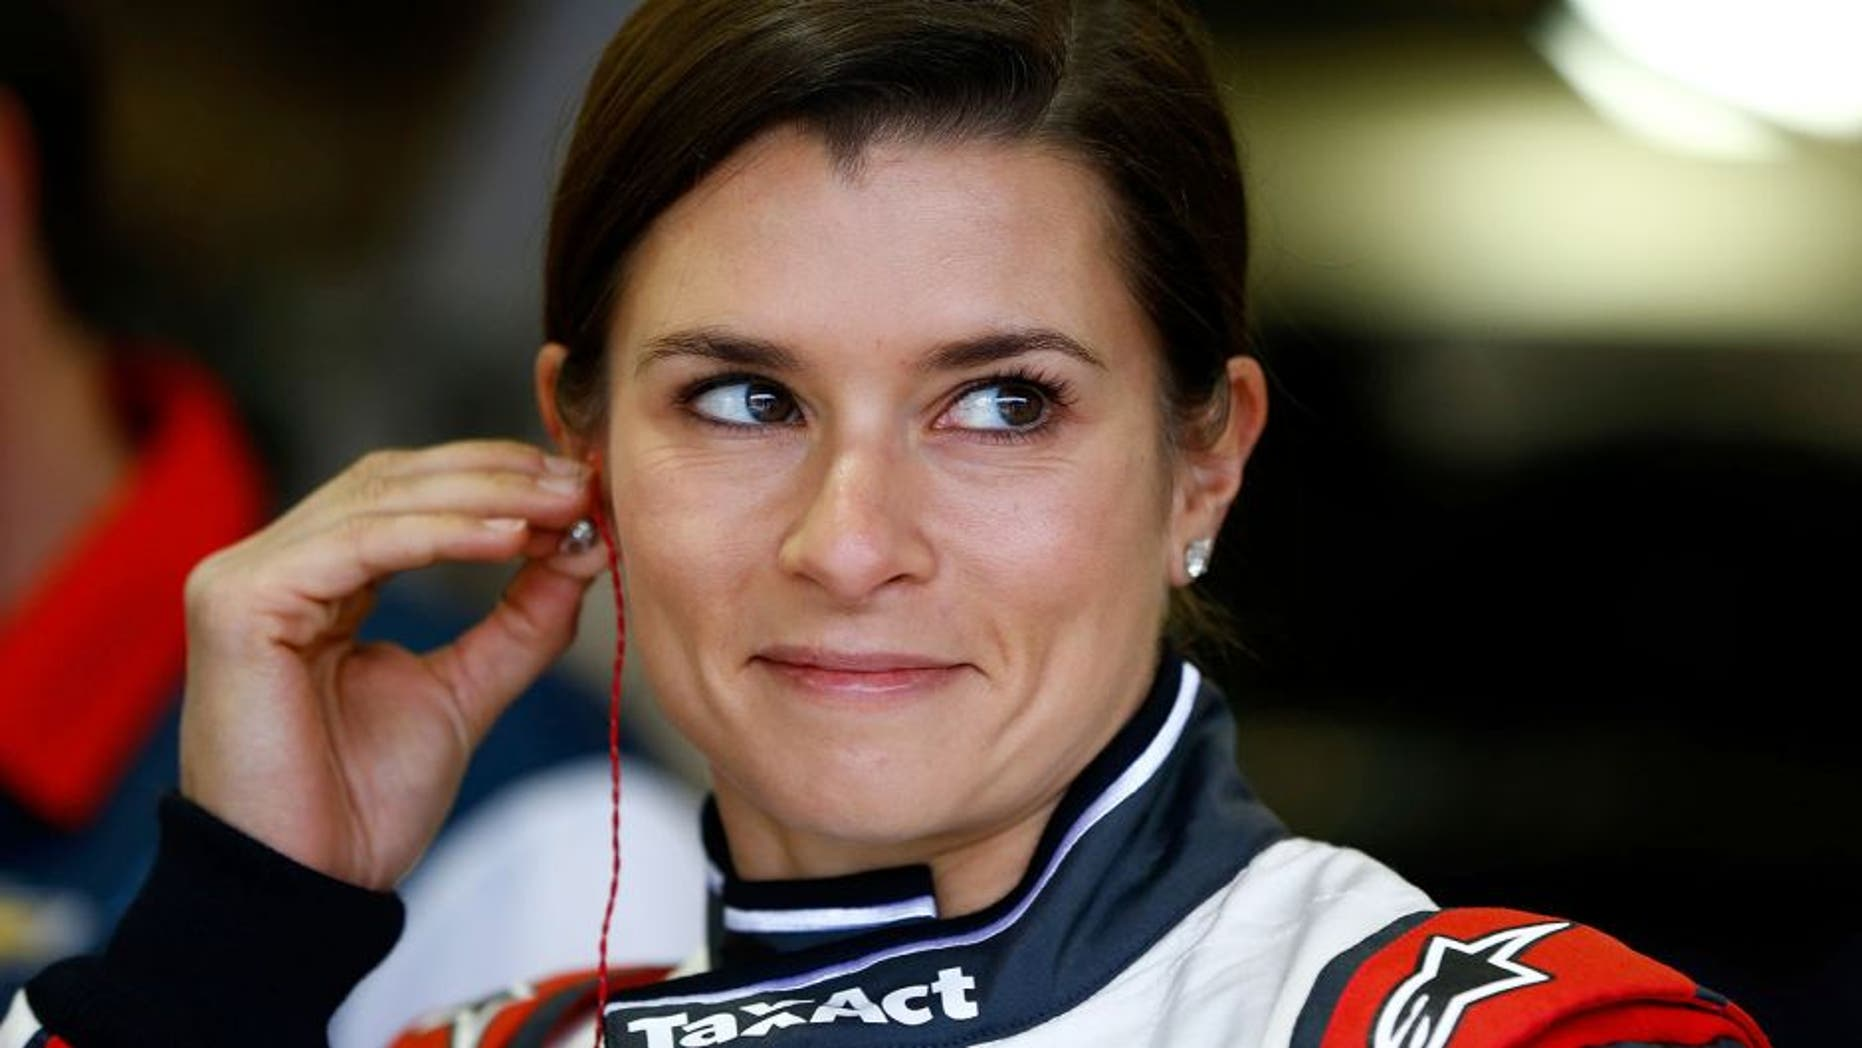 FONTANA, CA - MARCH 19: Danica Patrick, driver of the #10 TaxACT Chevrolet, adjusts her equipment in the garage area during practice for the NASCAR Sprint Cup Series Auto Club 400 at Auto Club Speedway on March 19, 2016 in Fontana, California. (Photo by Jonathan Ferrey/Getty Images)